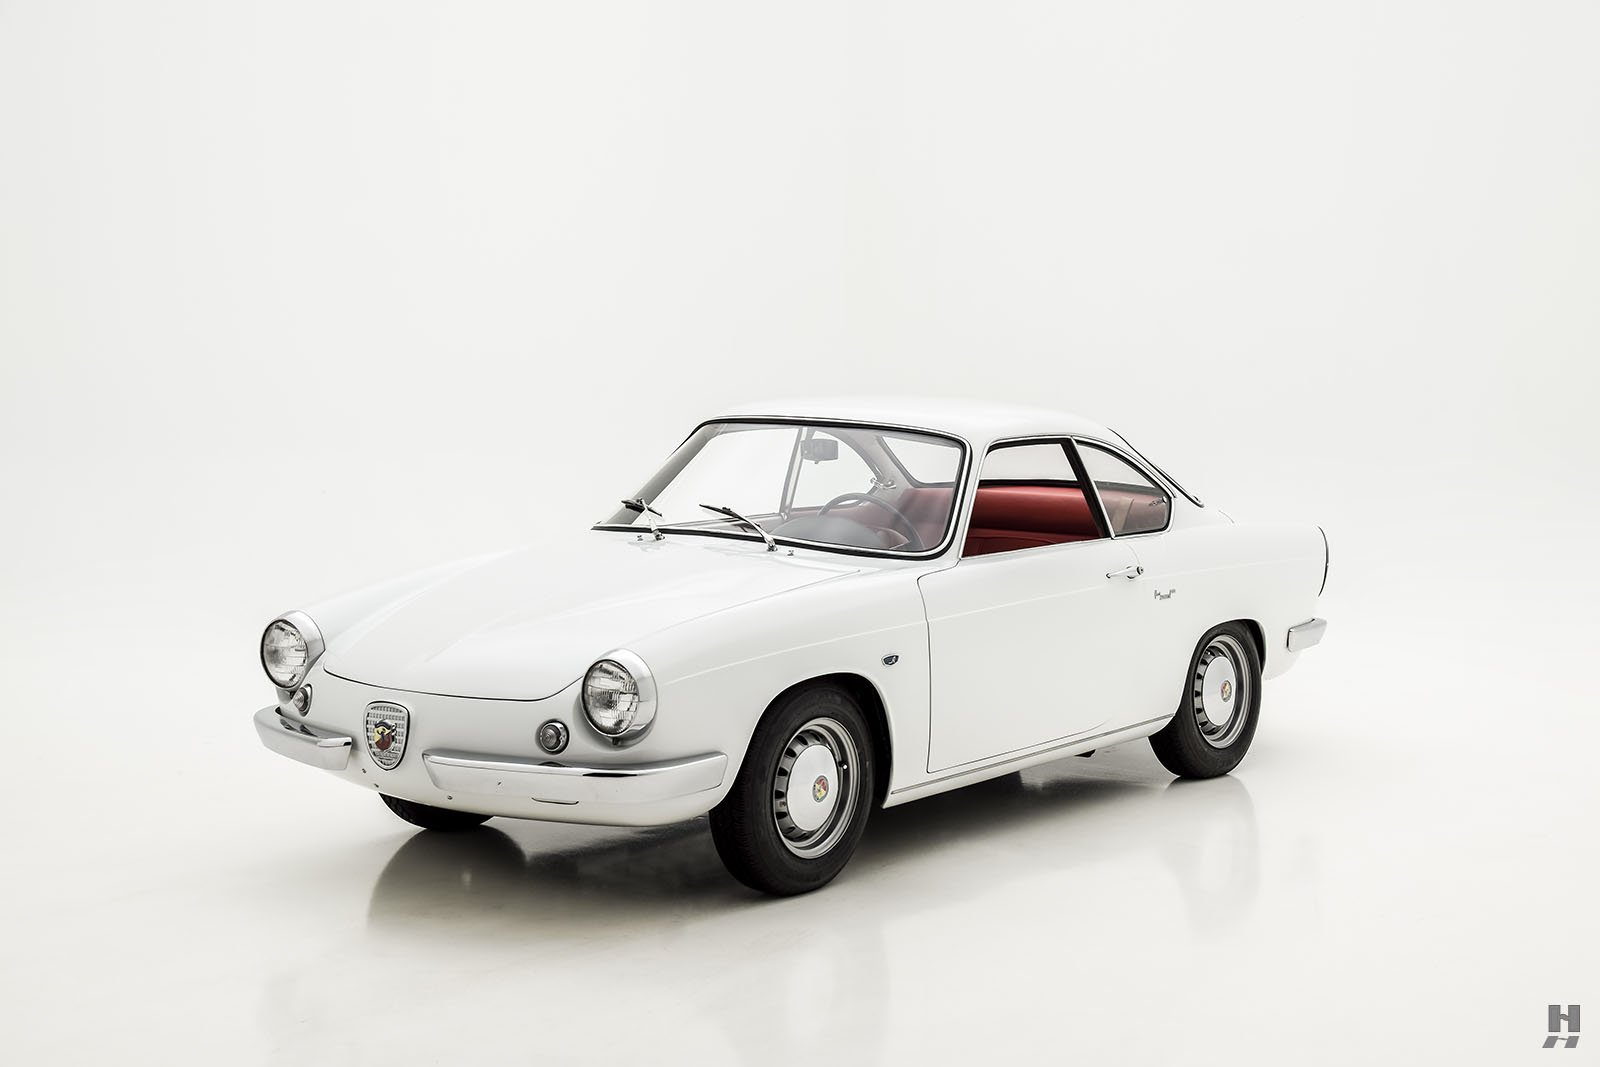 1960 Abarth 850 Allemano Coupe For Sale | Buy Classic Cars | Hyman LTD